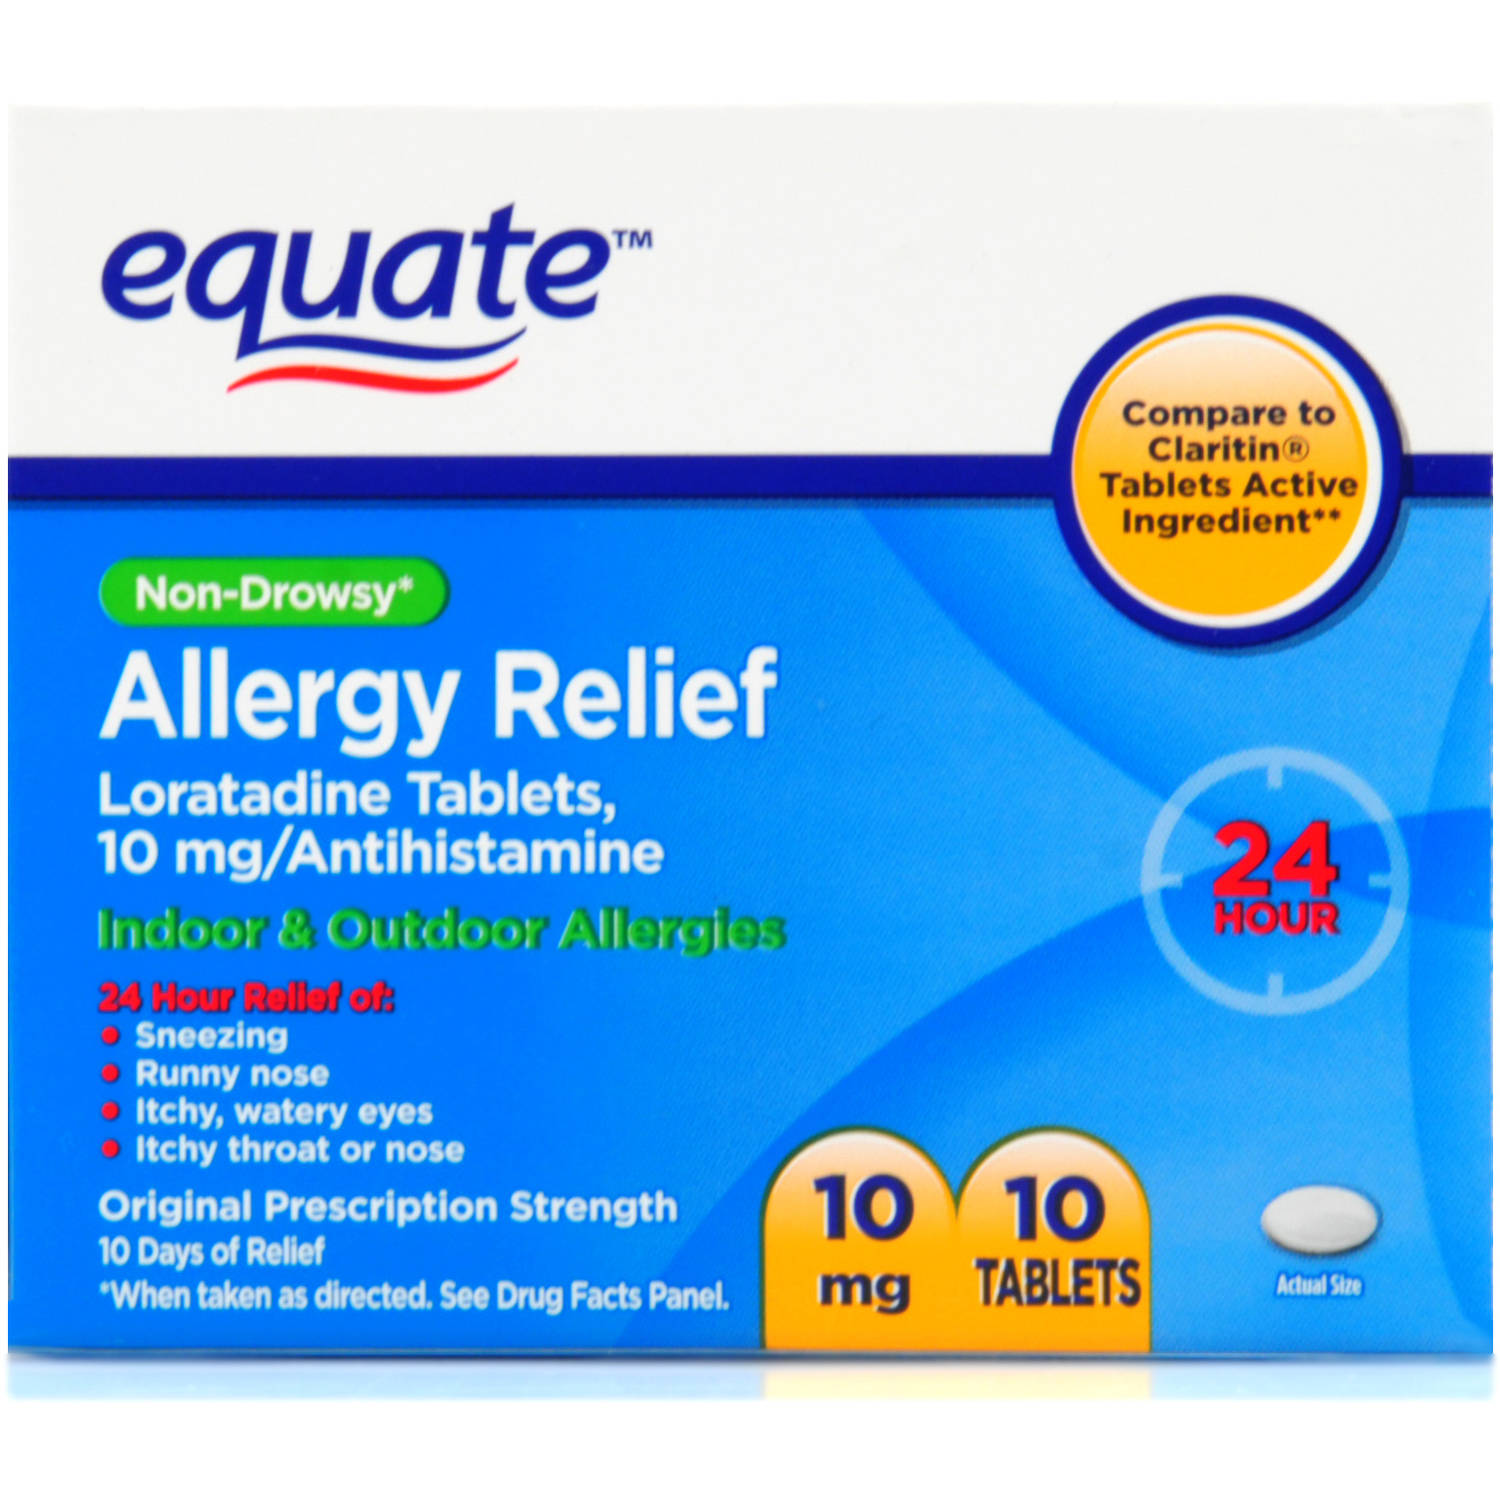 Equate Non-Drowsy 24 hour Allergy Relief, 10ct